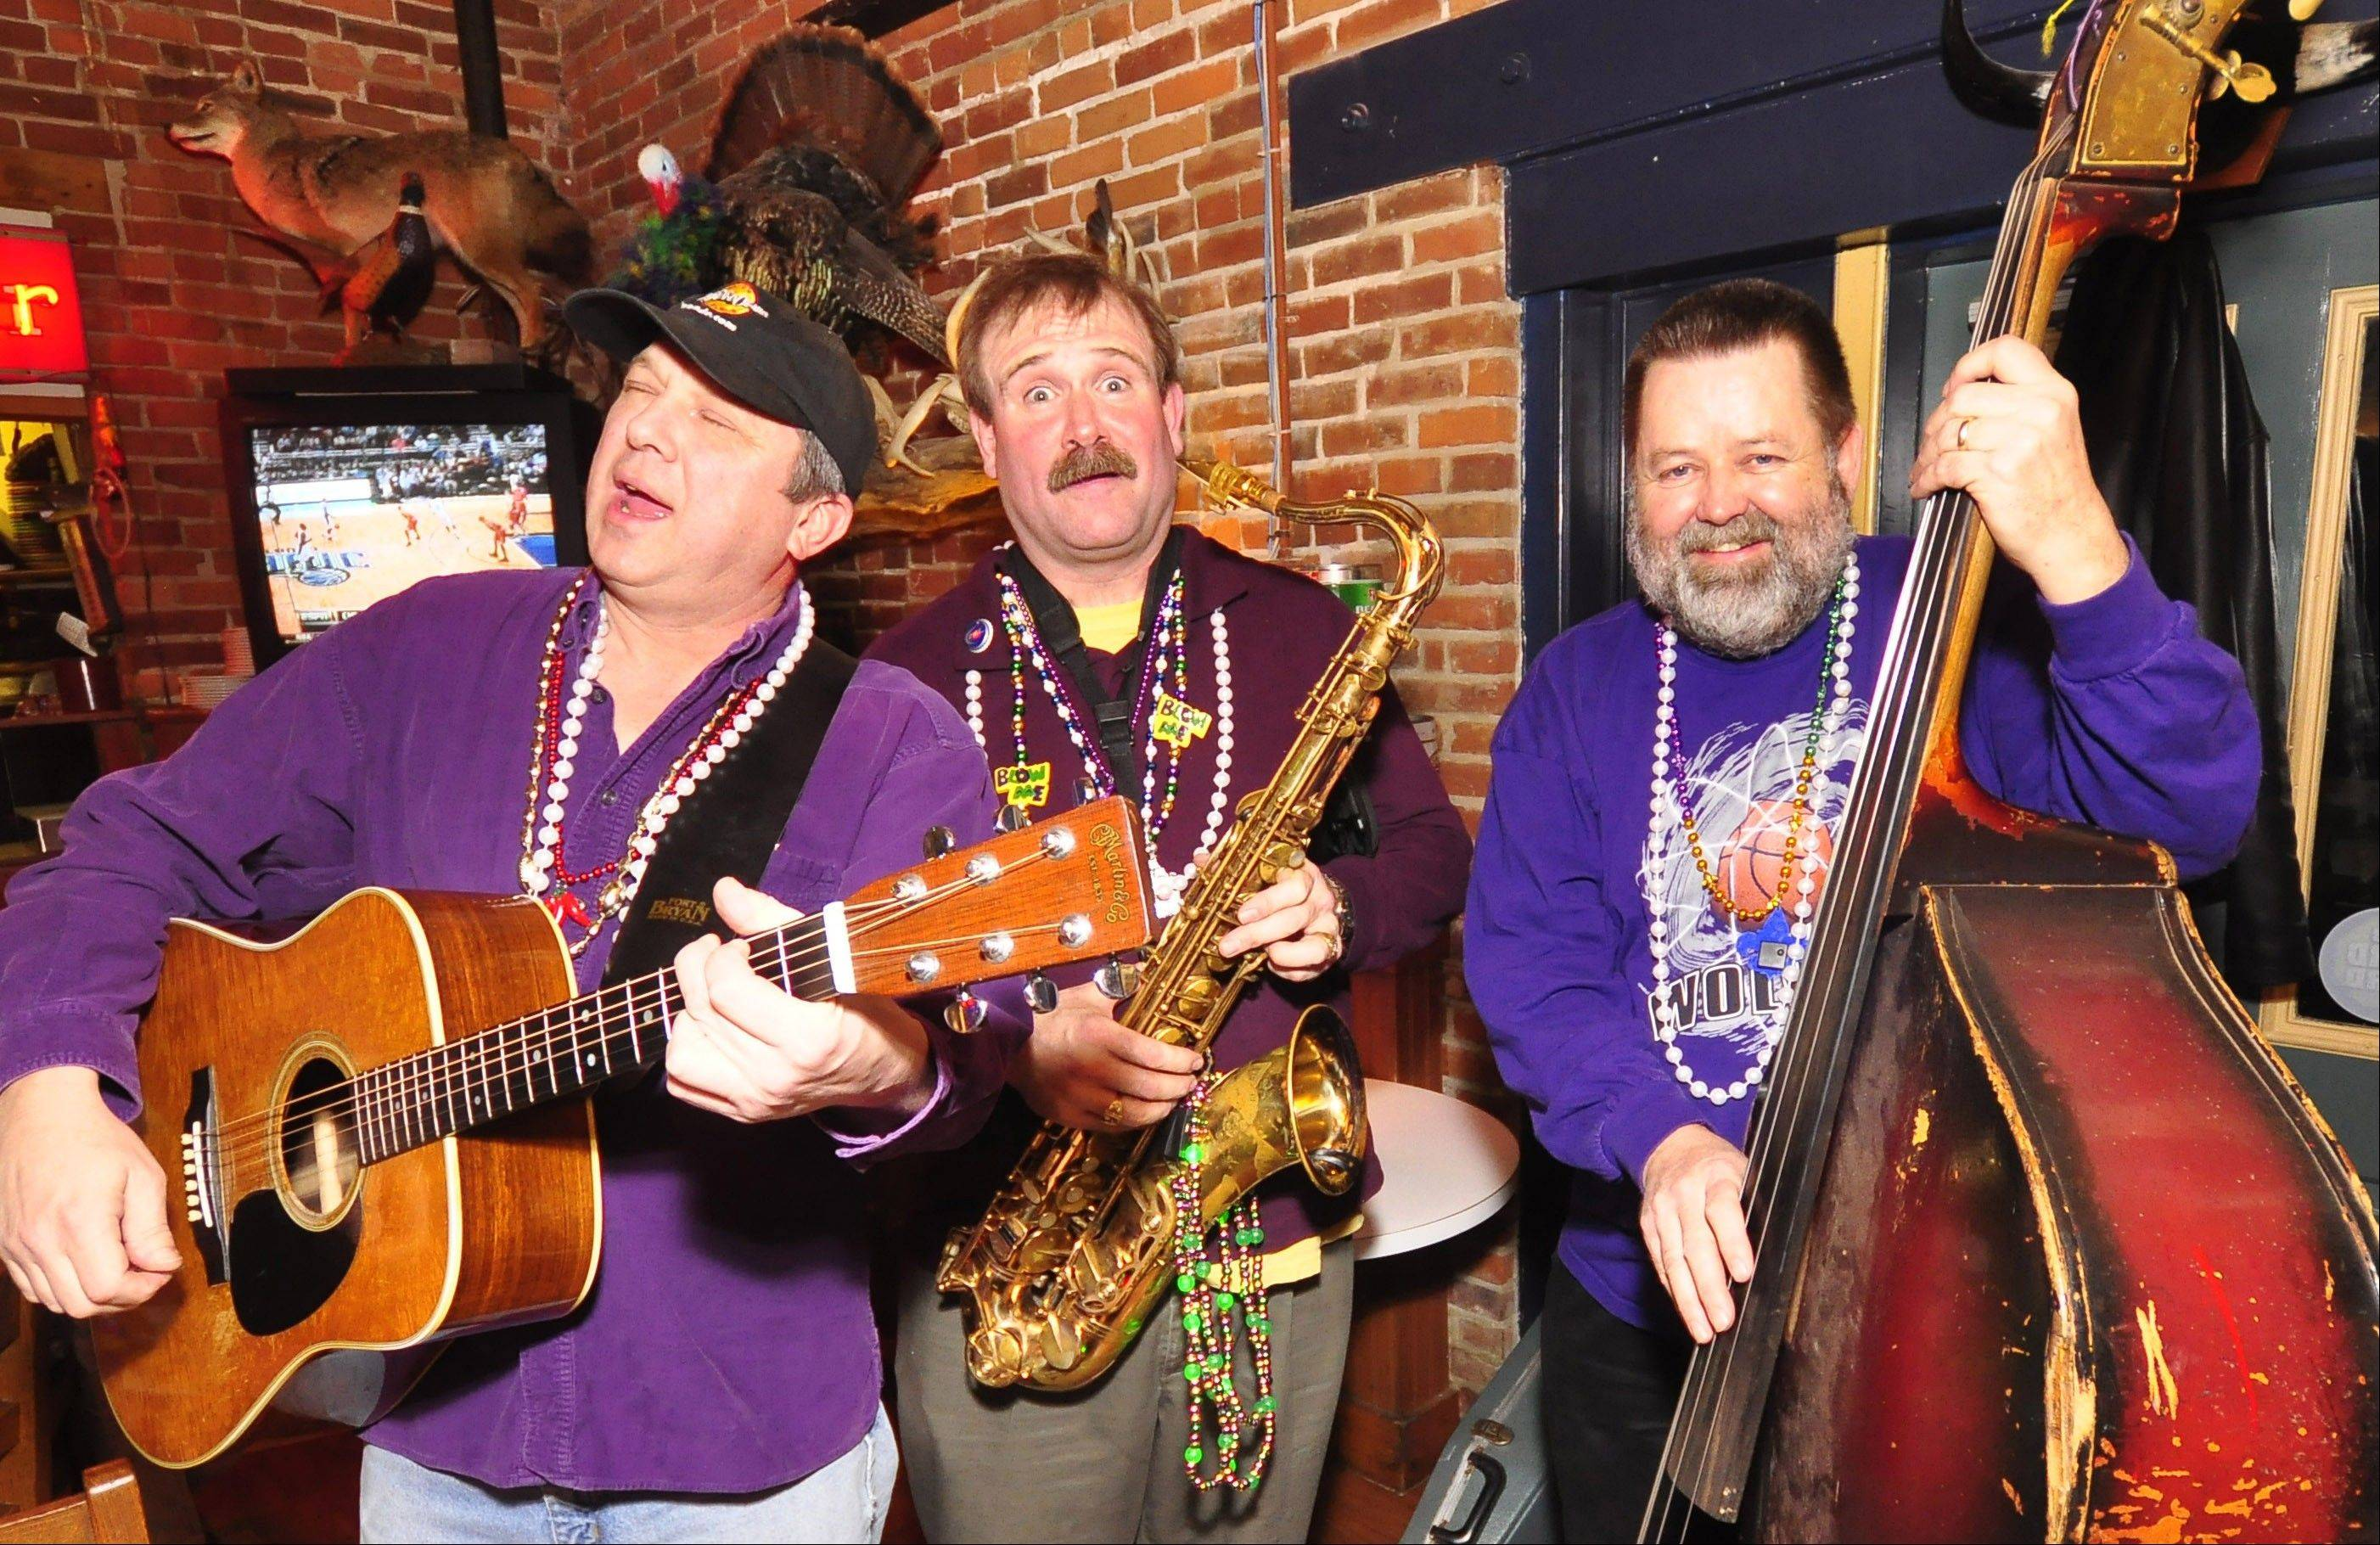 Celebrate Mardi Gras Weekend in Galena with a parade, pub crawl and more Feb. 8-9. Credit: Galena Gazette.